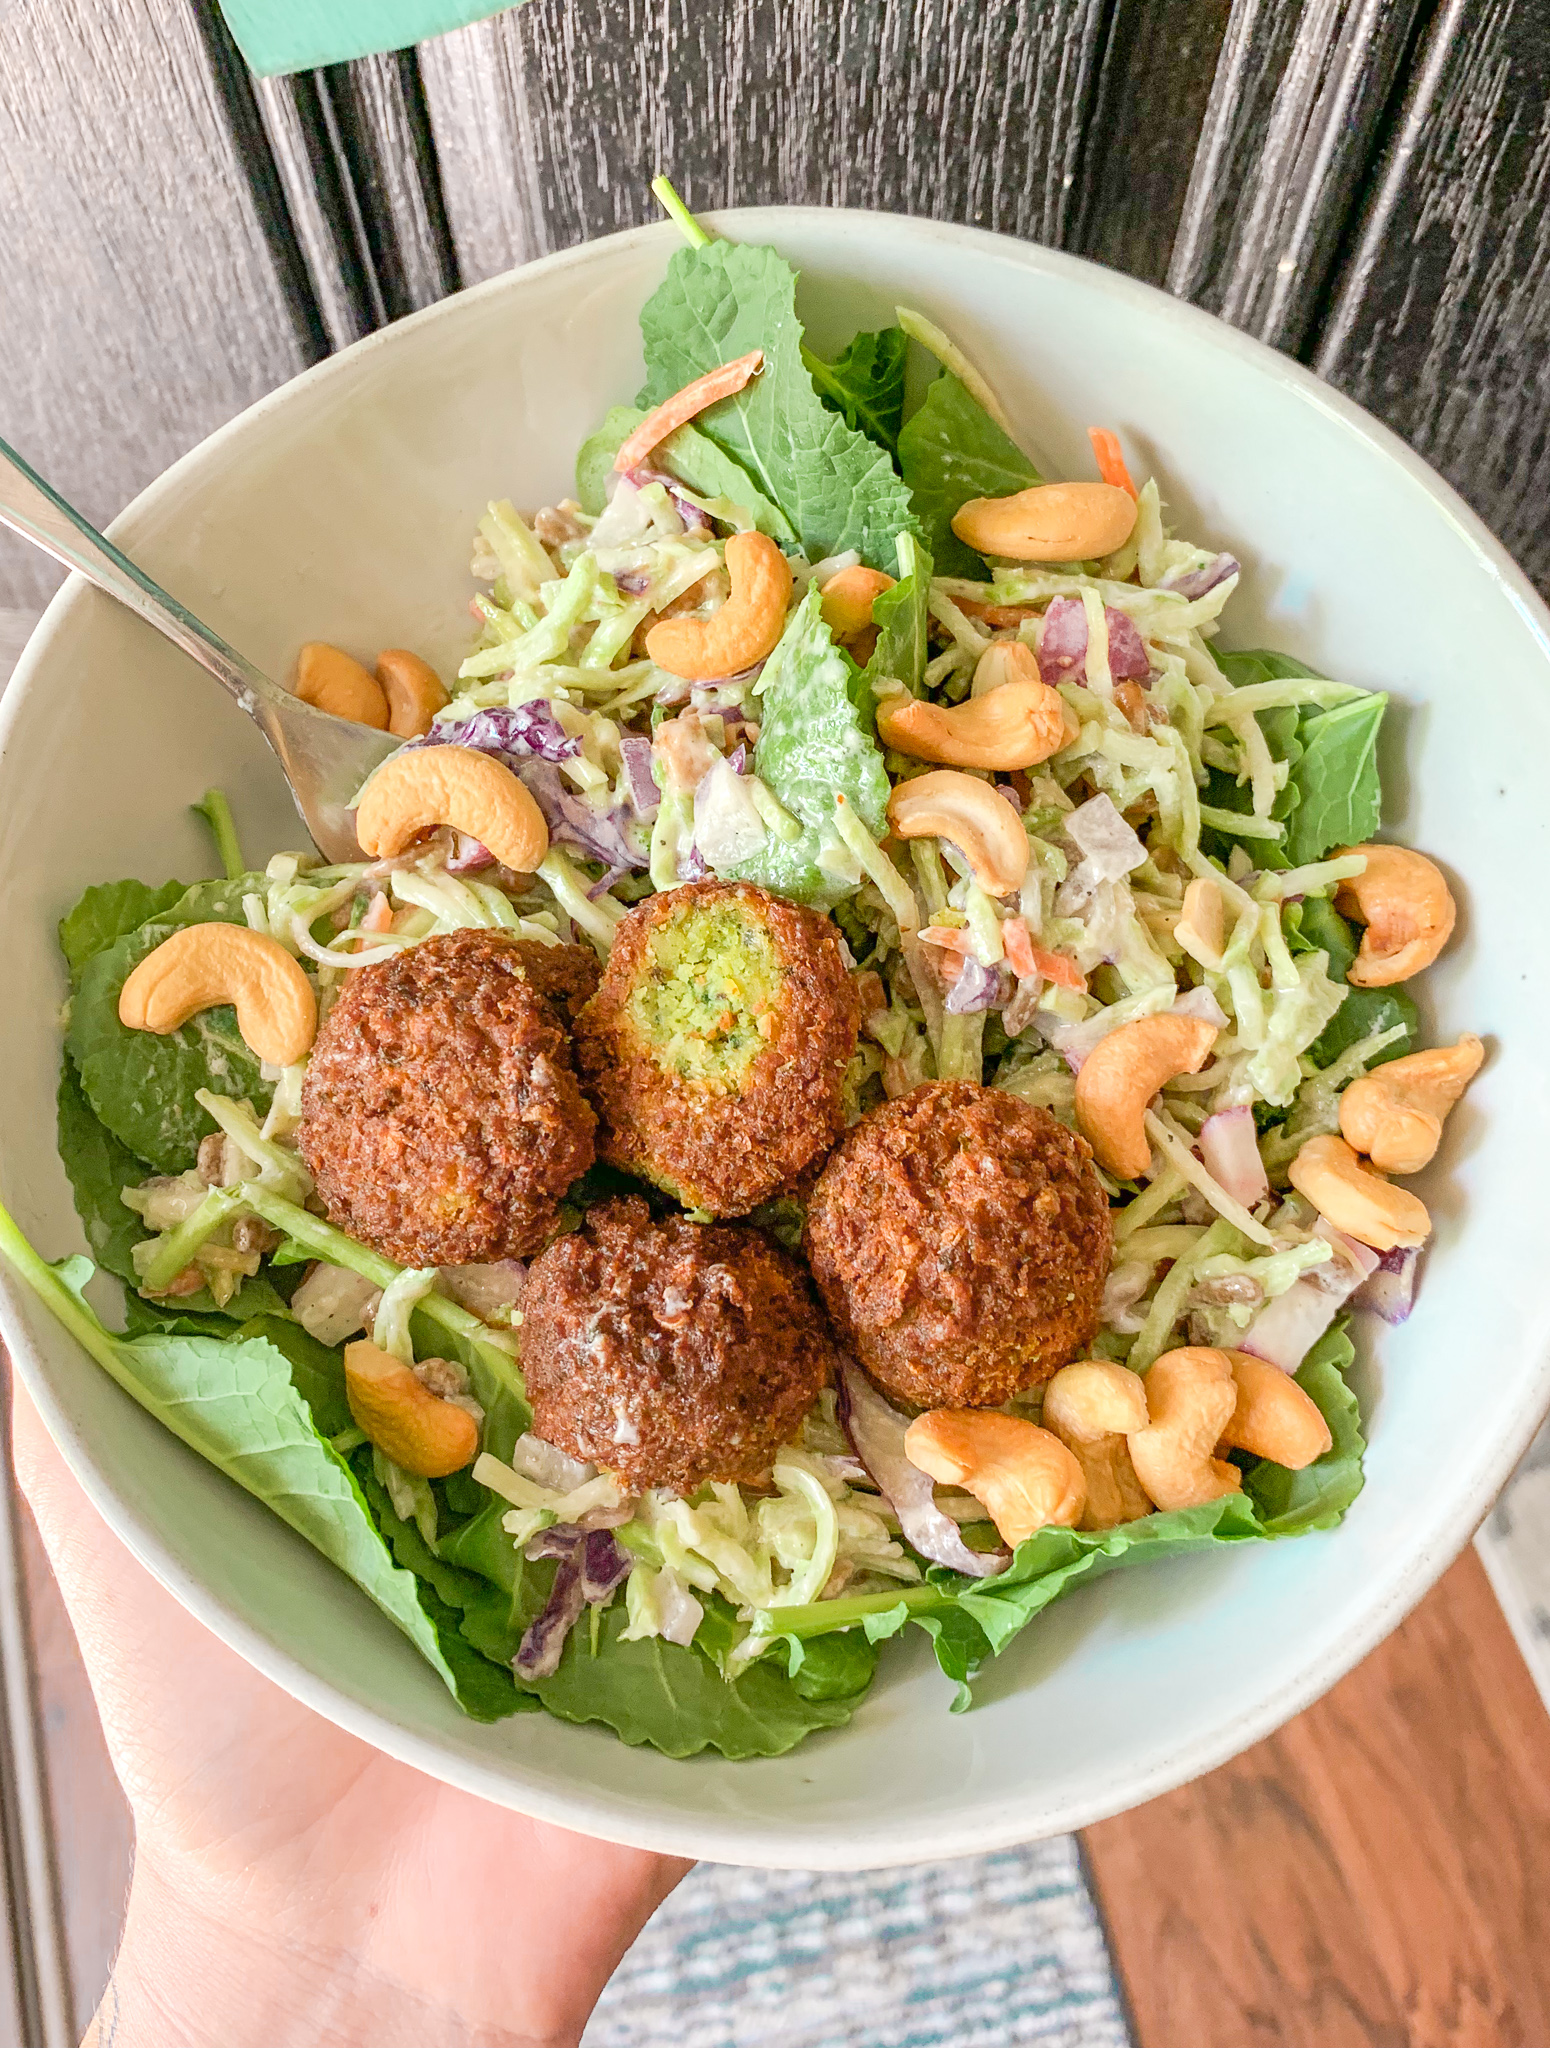 healthy dinner falafel salad Whole Foods healthy slaw cashews baby kale delicious food dinner gluten free dairy free low calorie healthy eating diet